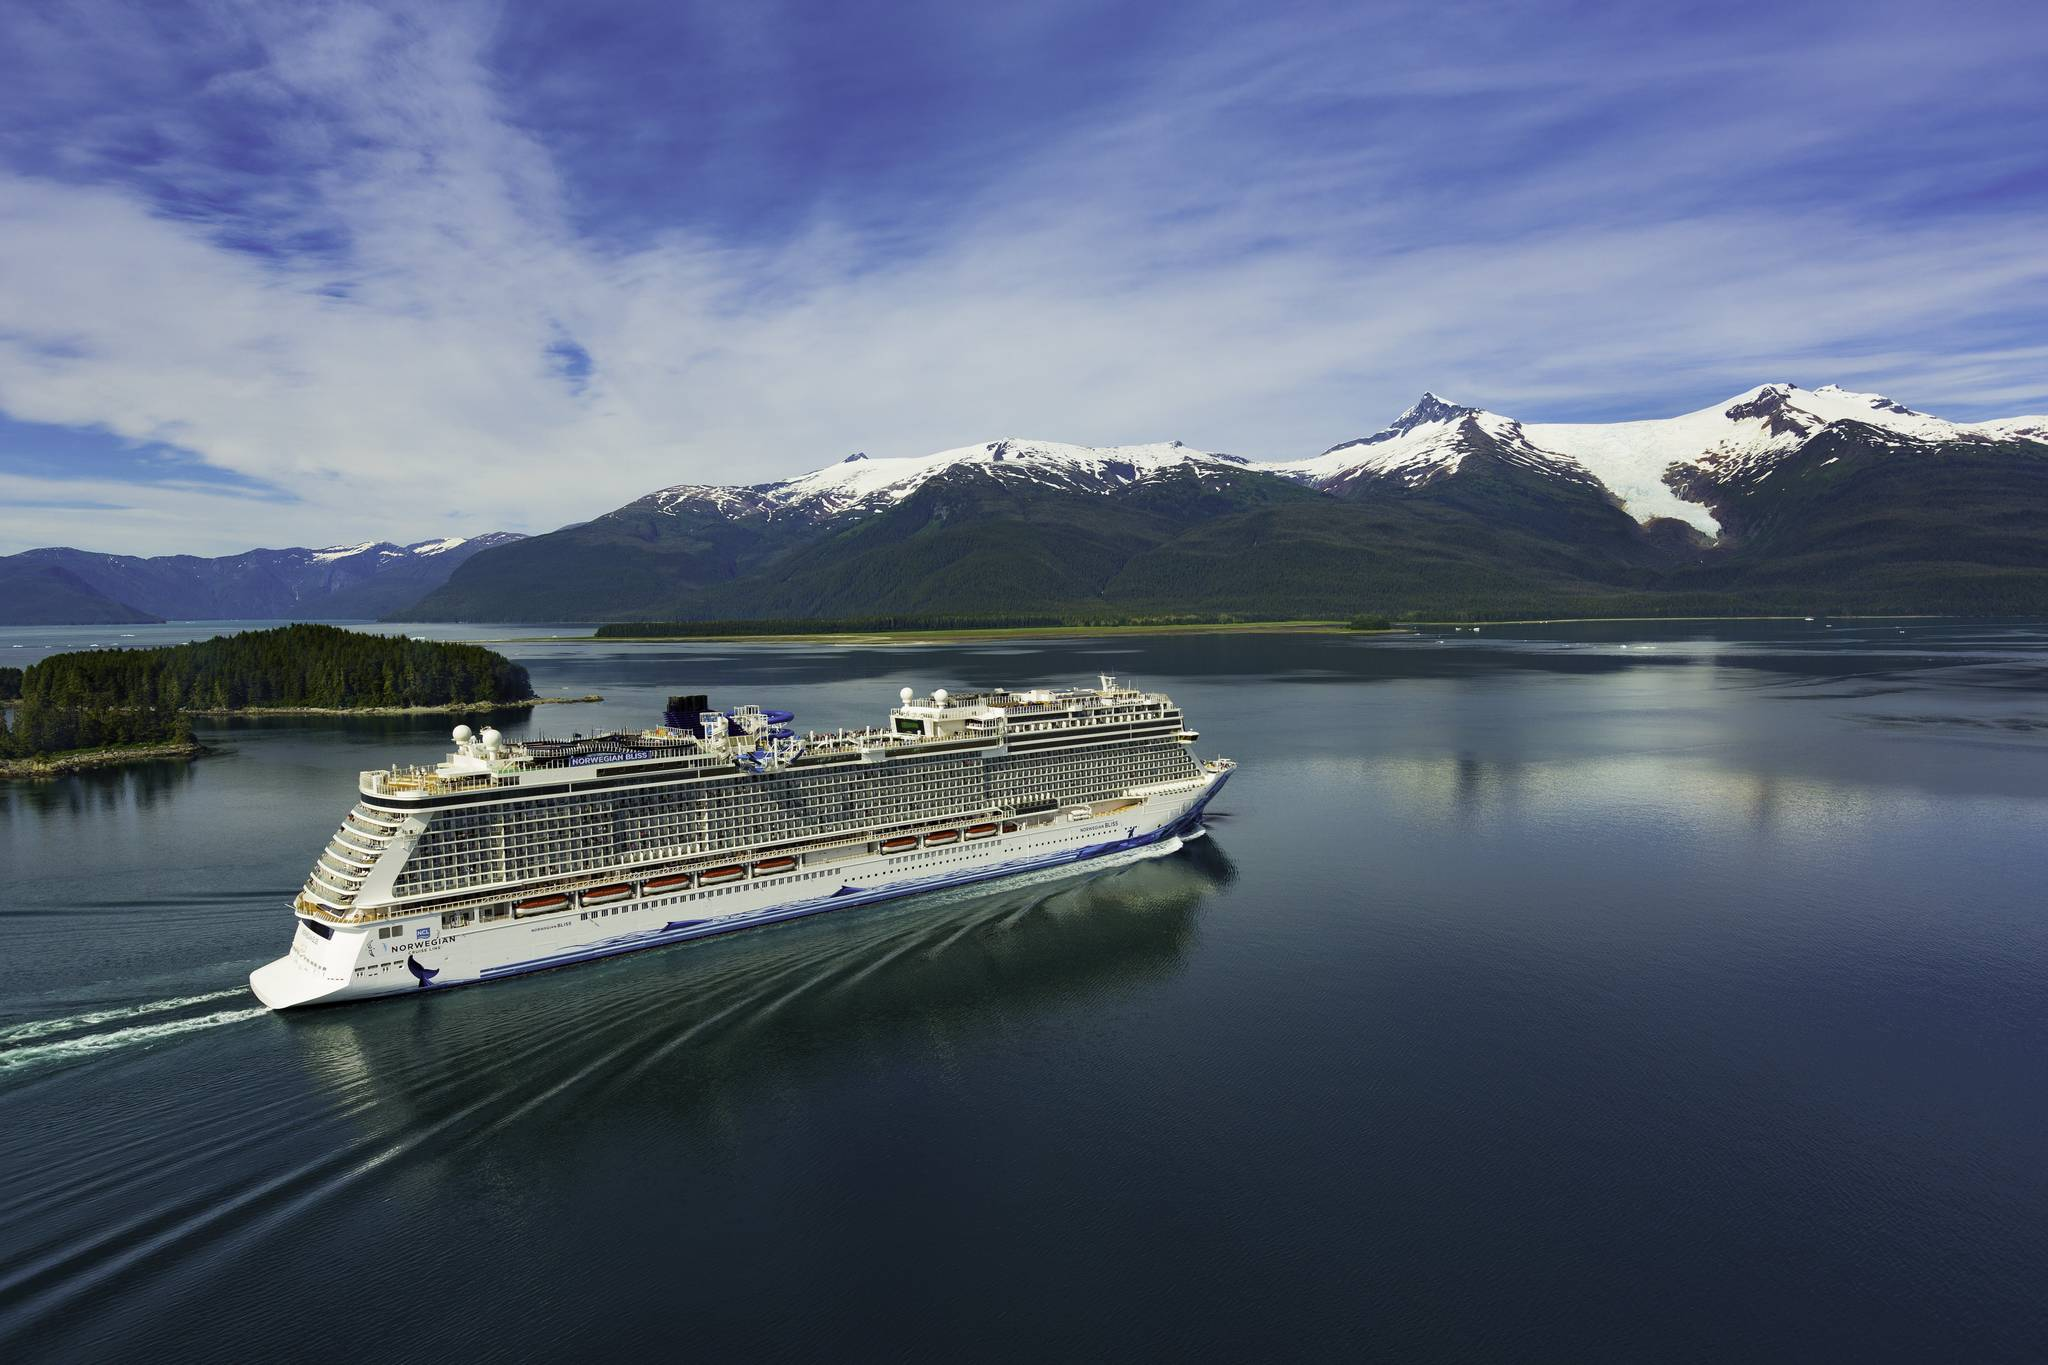 Large cruises ships like Norwegian Cruise Line's Norwegian Bliss, seen here near Ketchikan in this undated photo, are returning to Alaska after being shutdown due to COVID-19. Trade group Cruise Lines International Association says the industry is ready to get back to business safely. (Courtesy photo / Norwegian Cruise Line)